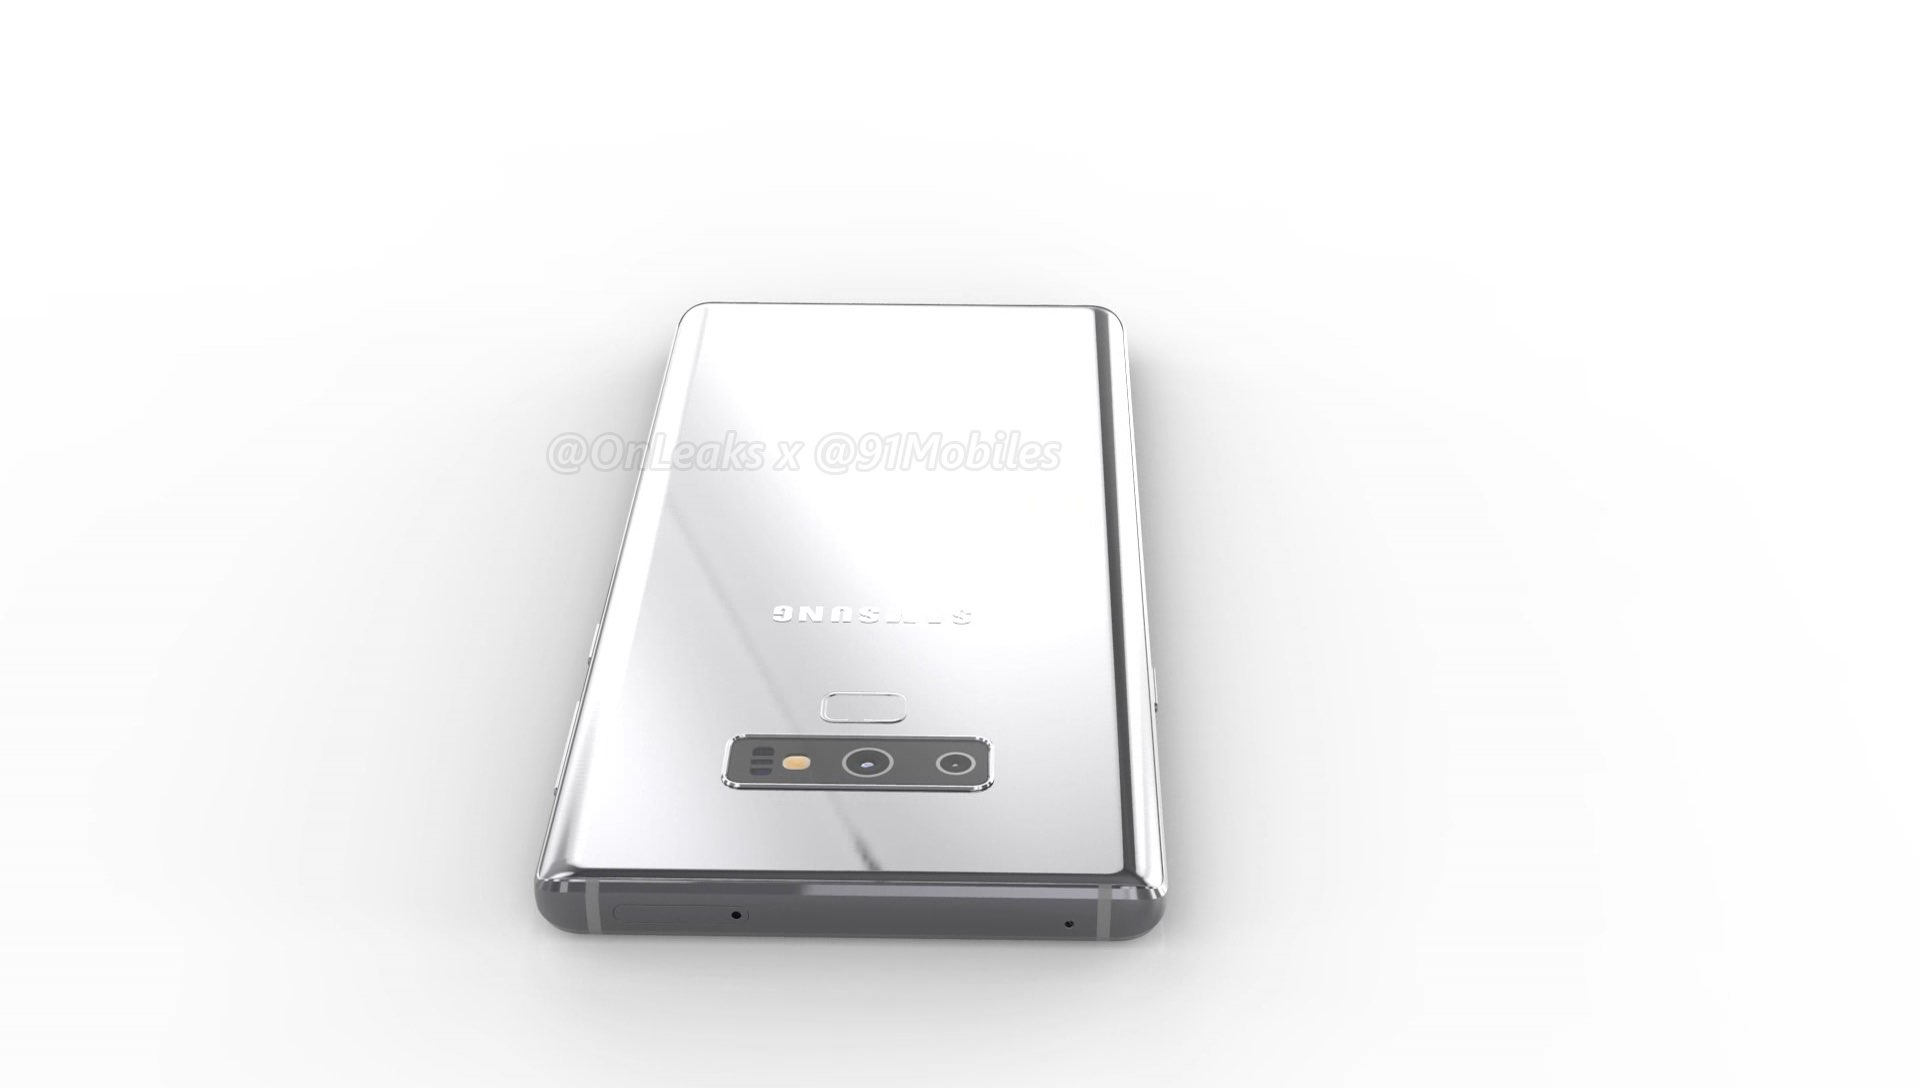 Samsung-Galaxy-Note-9-render-91mobiles-10-squashed